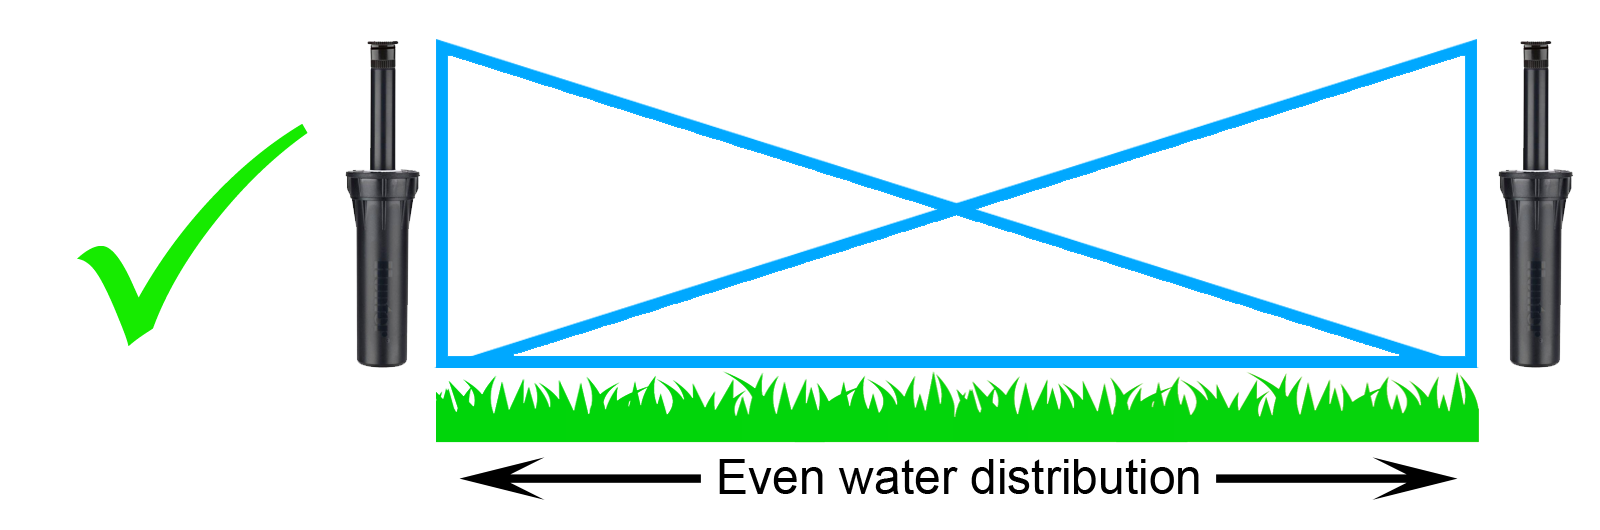 Top 10 Irrigation System Problems Solutions Diy Grounded Sprinkler Systems Wiring Diagram Likewise Solenoid Perhaps The Most Common Design Flaw We See In Installations Is Lack Of Head To Which Results Dry Spots Over Watering Or Under